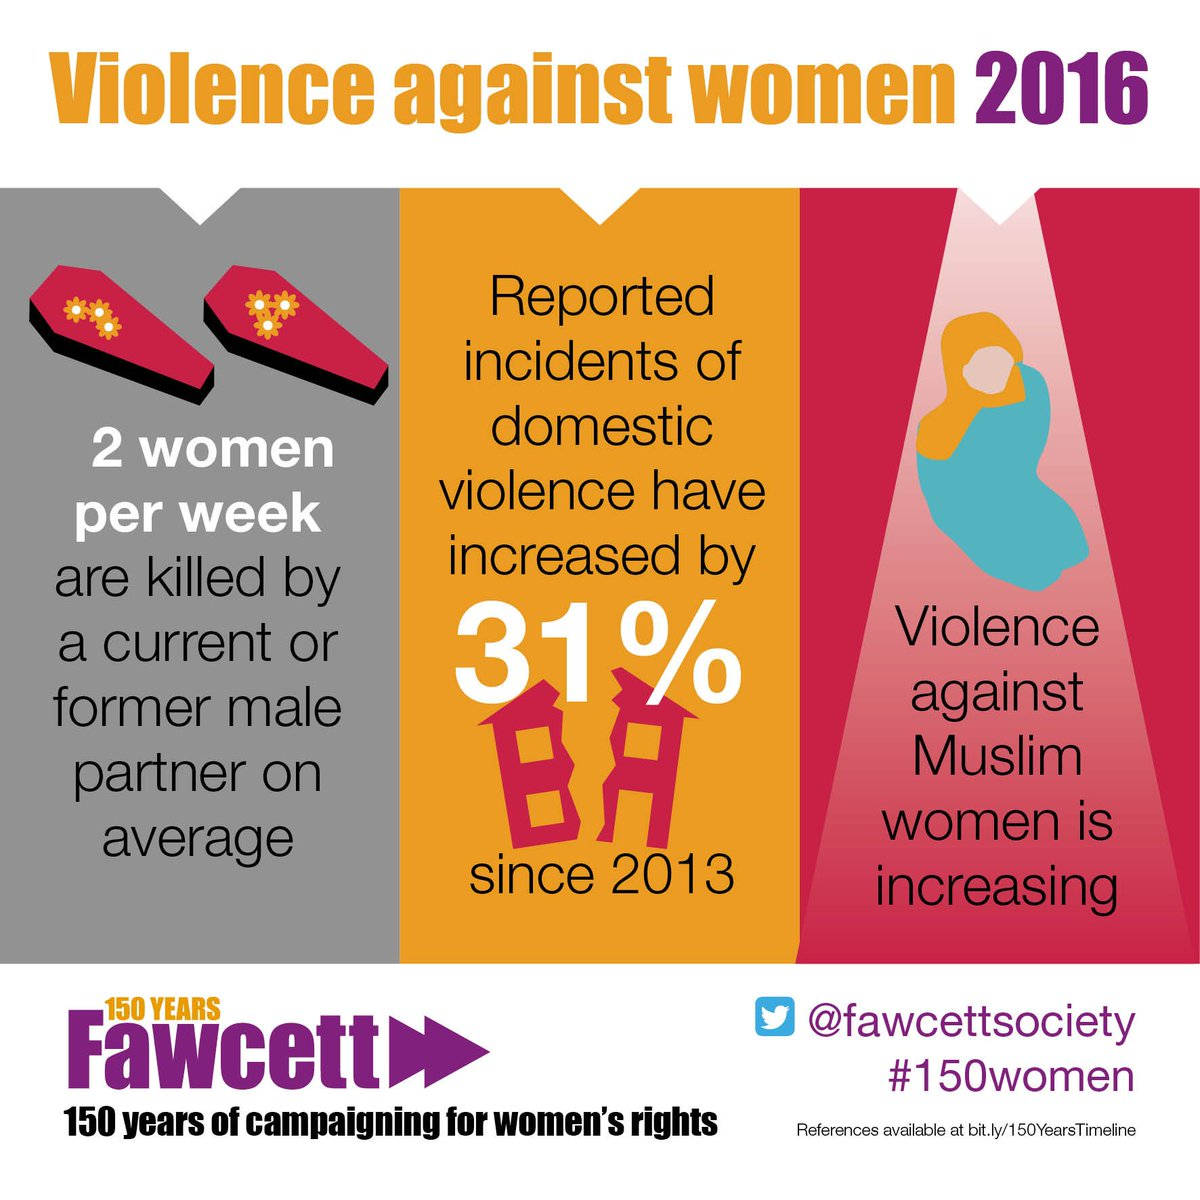 violence against women essays articles Aboriginal women and women are powerful and beautiful unfortunately, they often face life-threatening, gender-based violence and disproportionately experience violent offenses because of hatred and racism (fact sheet: violence against aboriginal women, 2013).